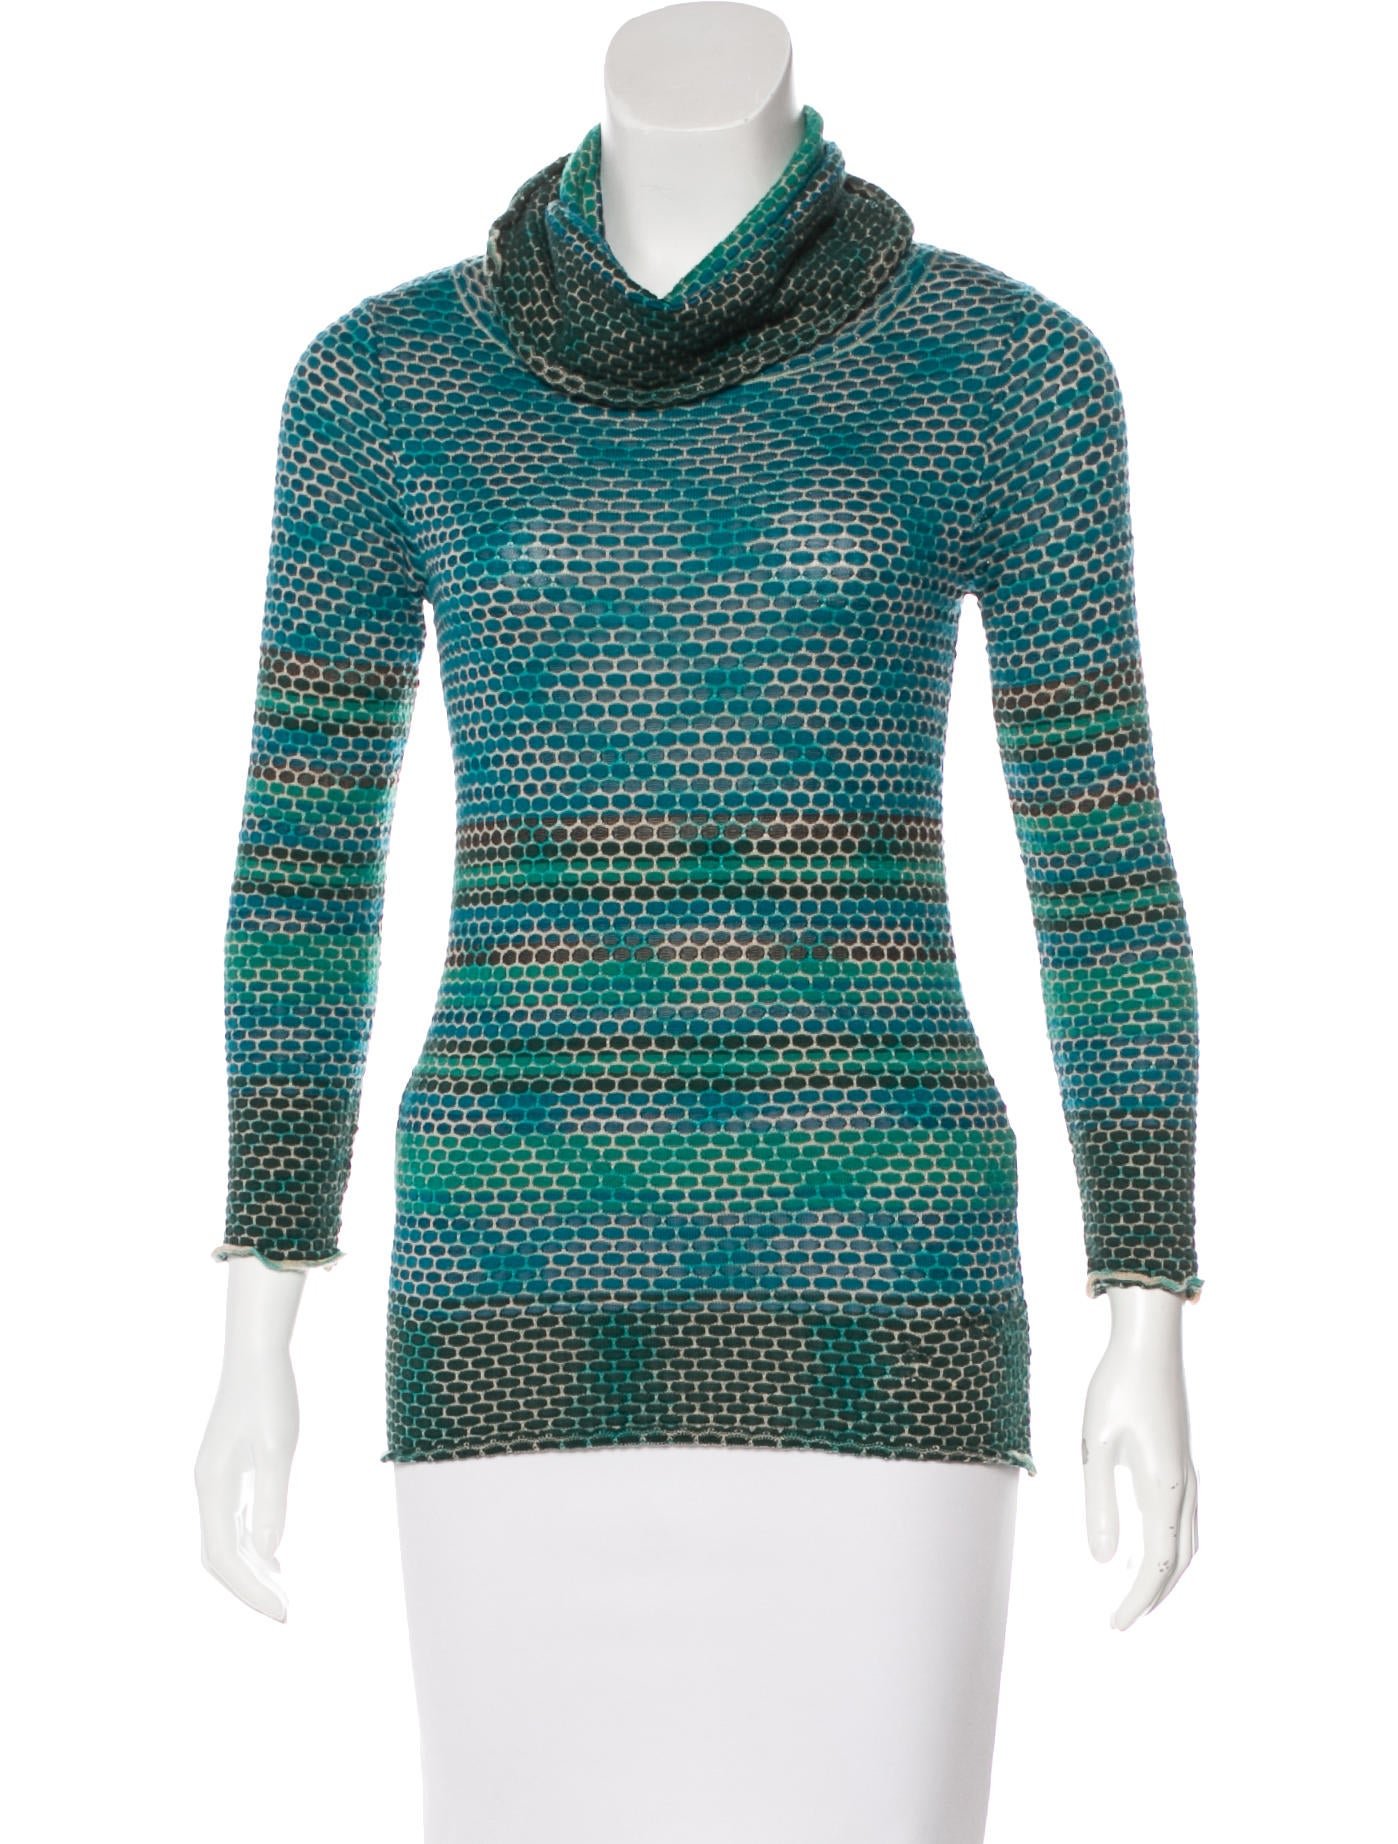 M missoni wool knit long sleeve top clothing wm443305 for Best wool shirt jackets